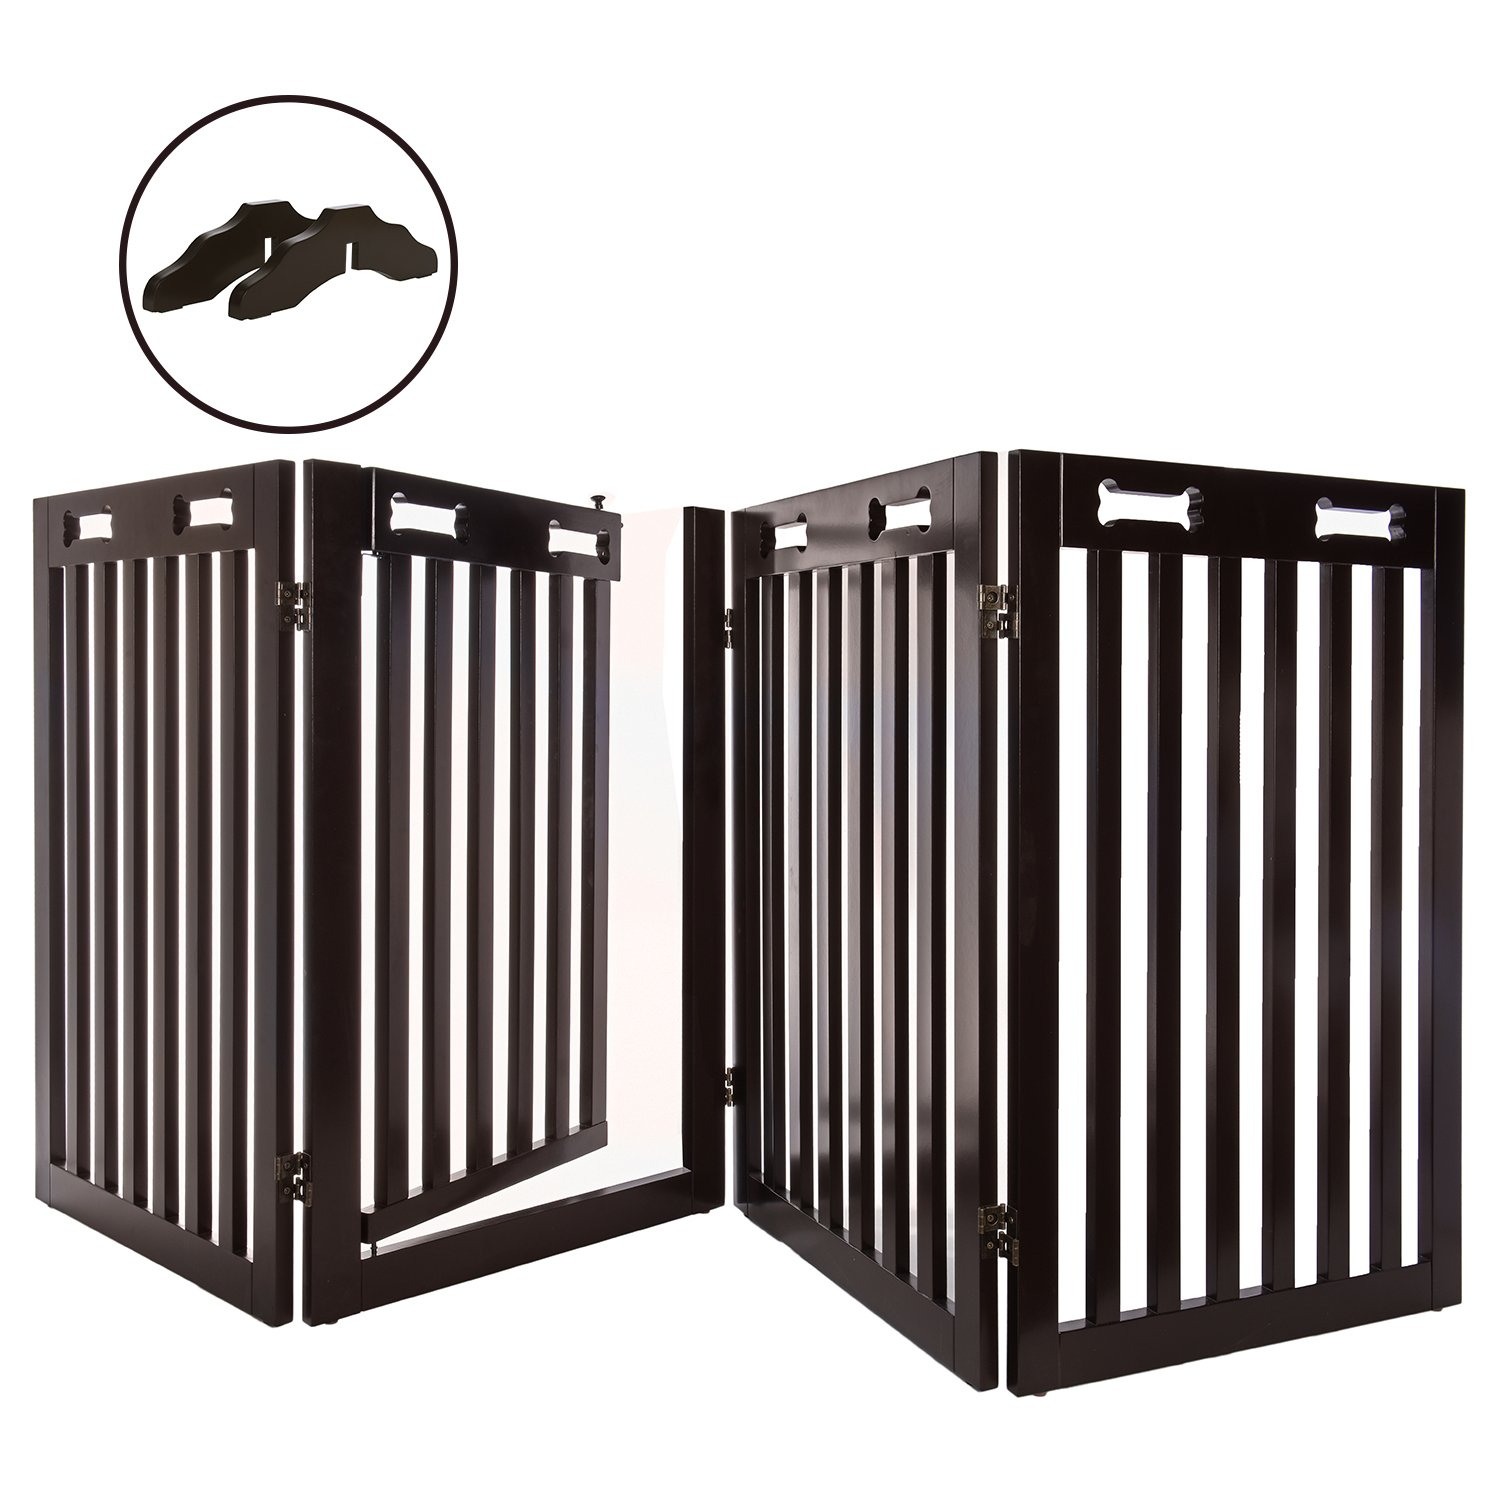 Arf Pets Free Standing Wood Dog Gate with Walk Through Door, Expandsup to 80'' Wide, 31.5'' High - Bonus Set of Foot Supporters Included - Upgraded 2019 Stronger Model by Arf Pets